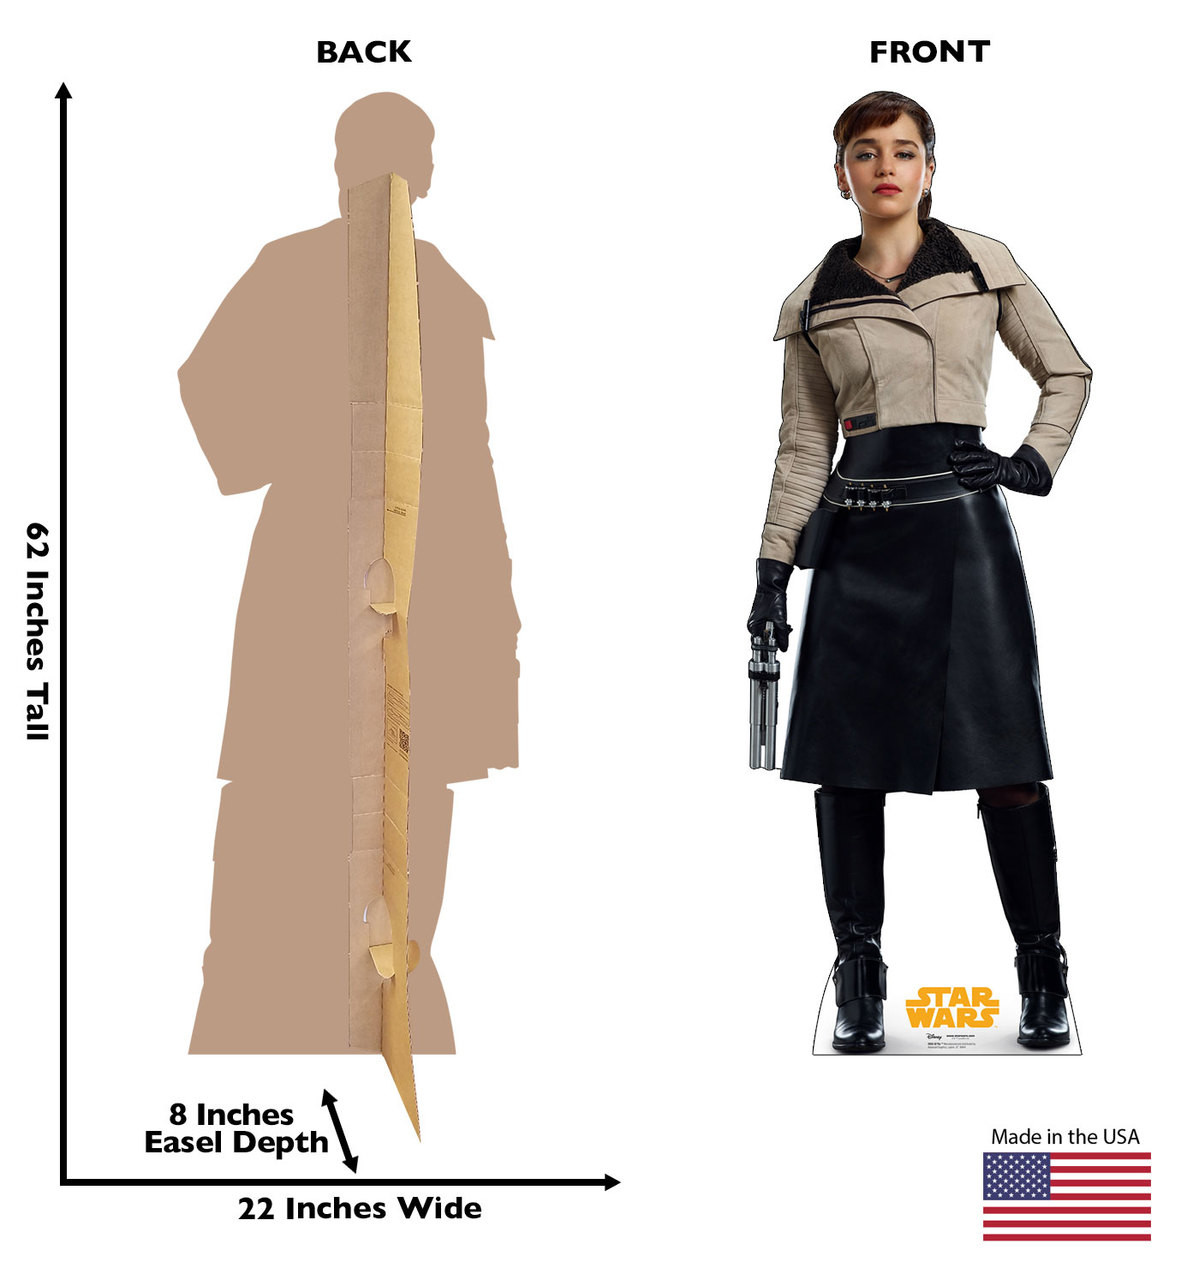 Ql'Ra™ Life-size cardboard standee back and front with dimensions.